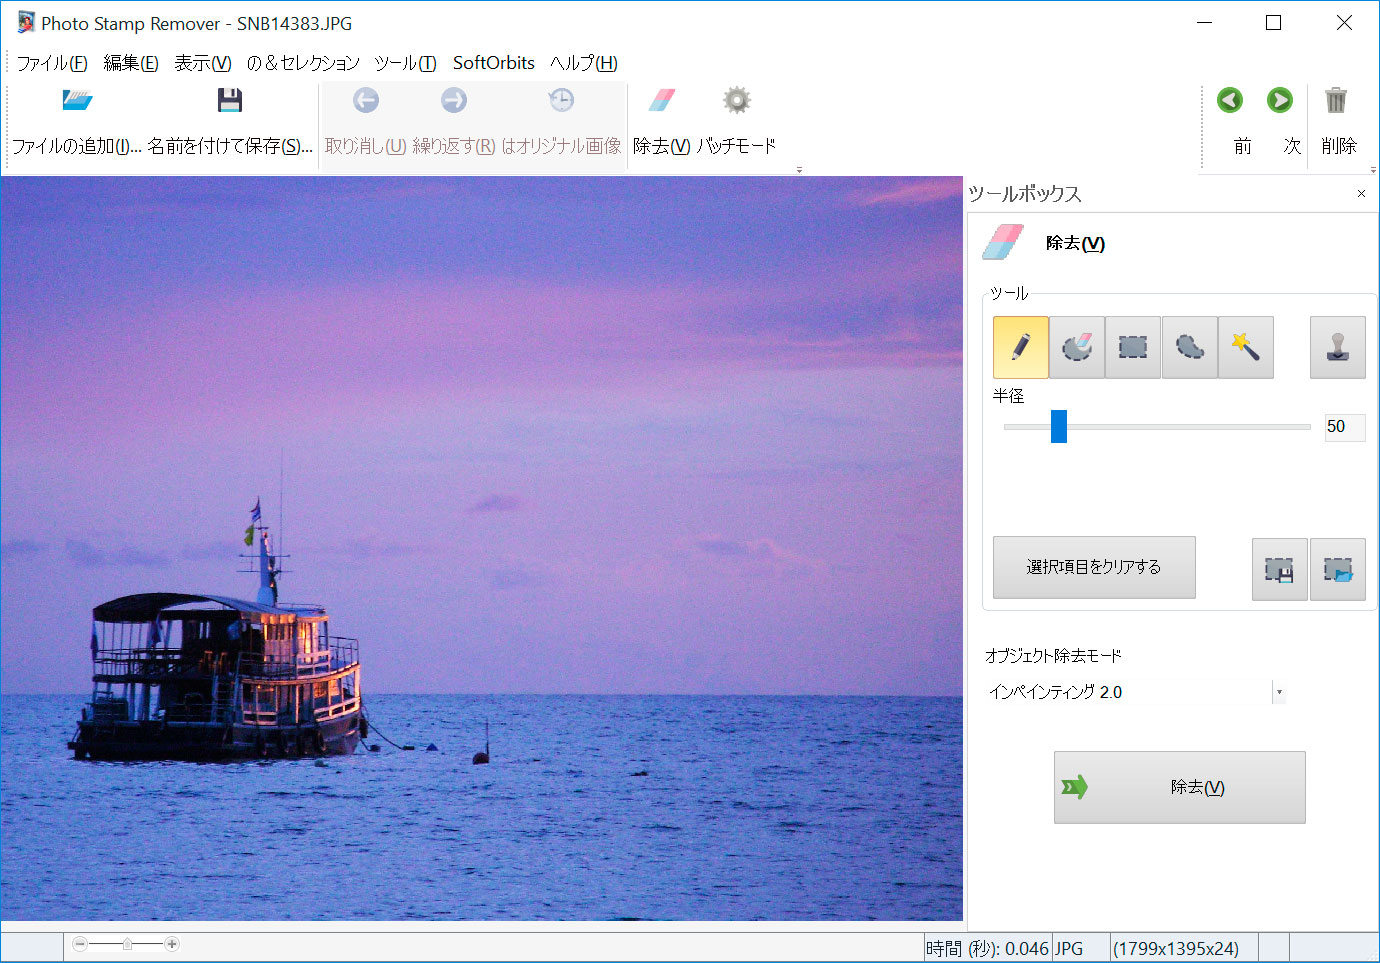 Photo Stamp Remover 屏幕截图